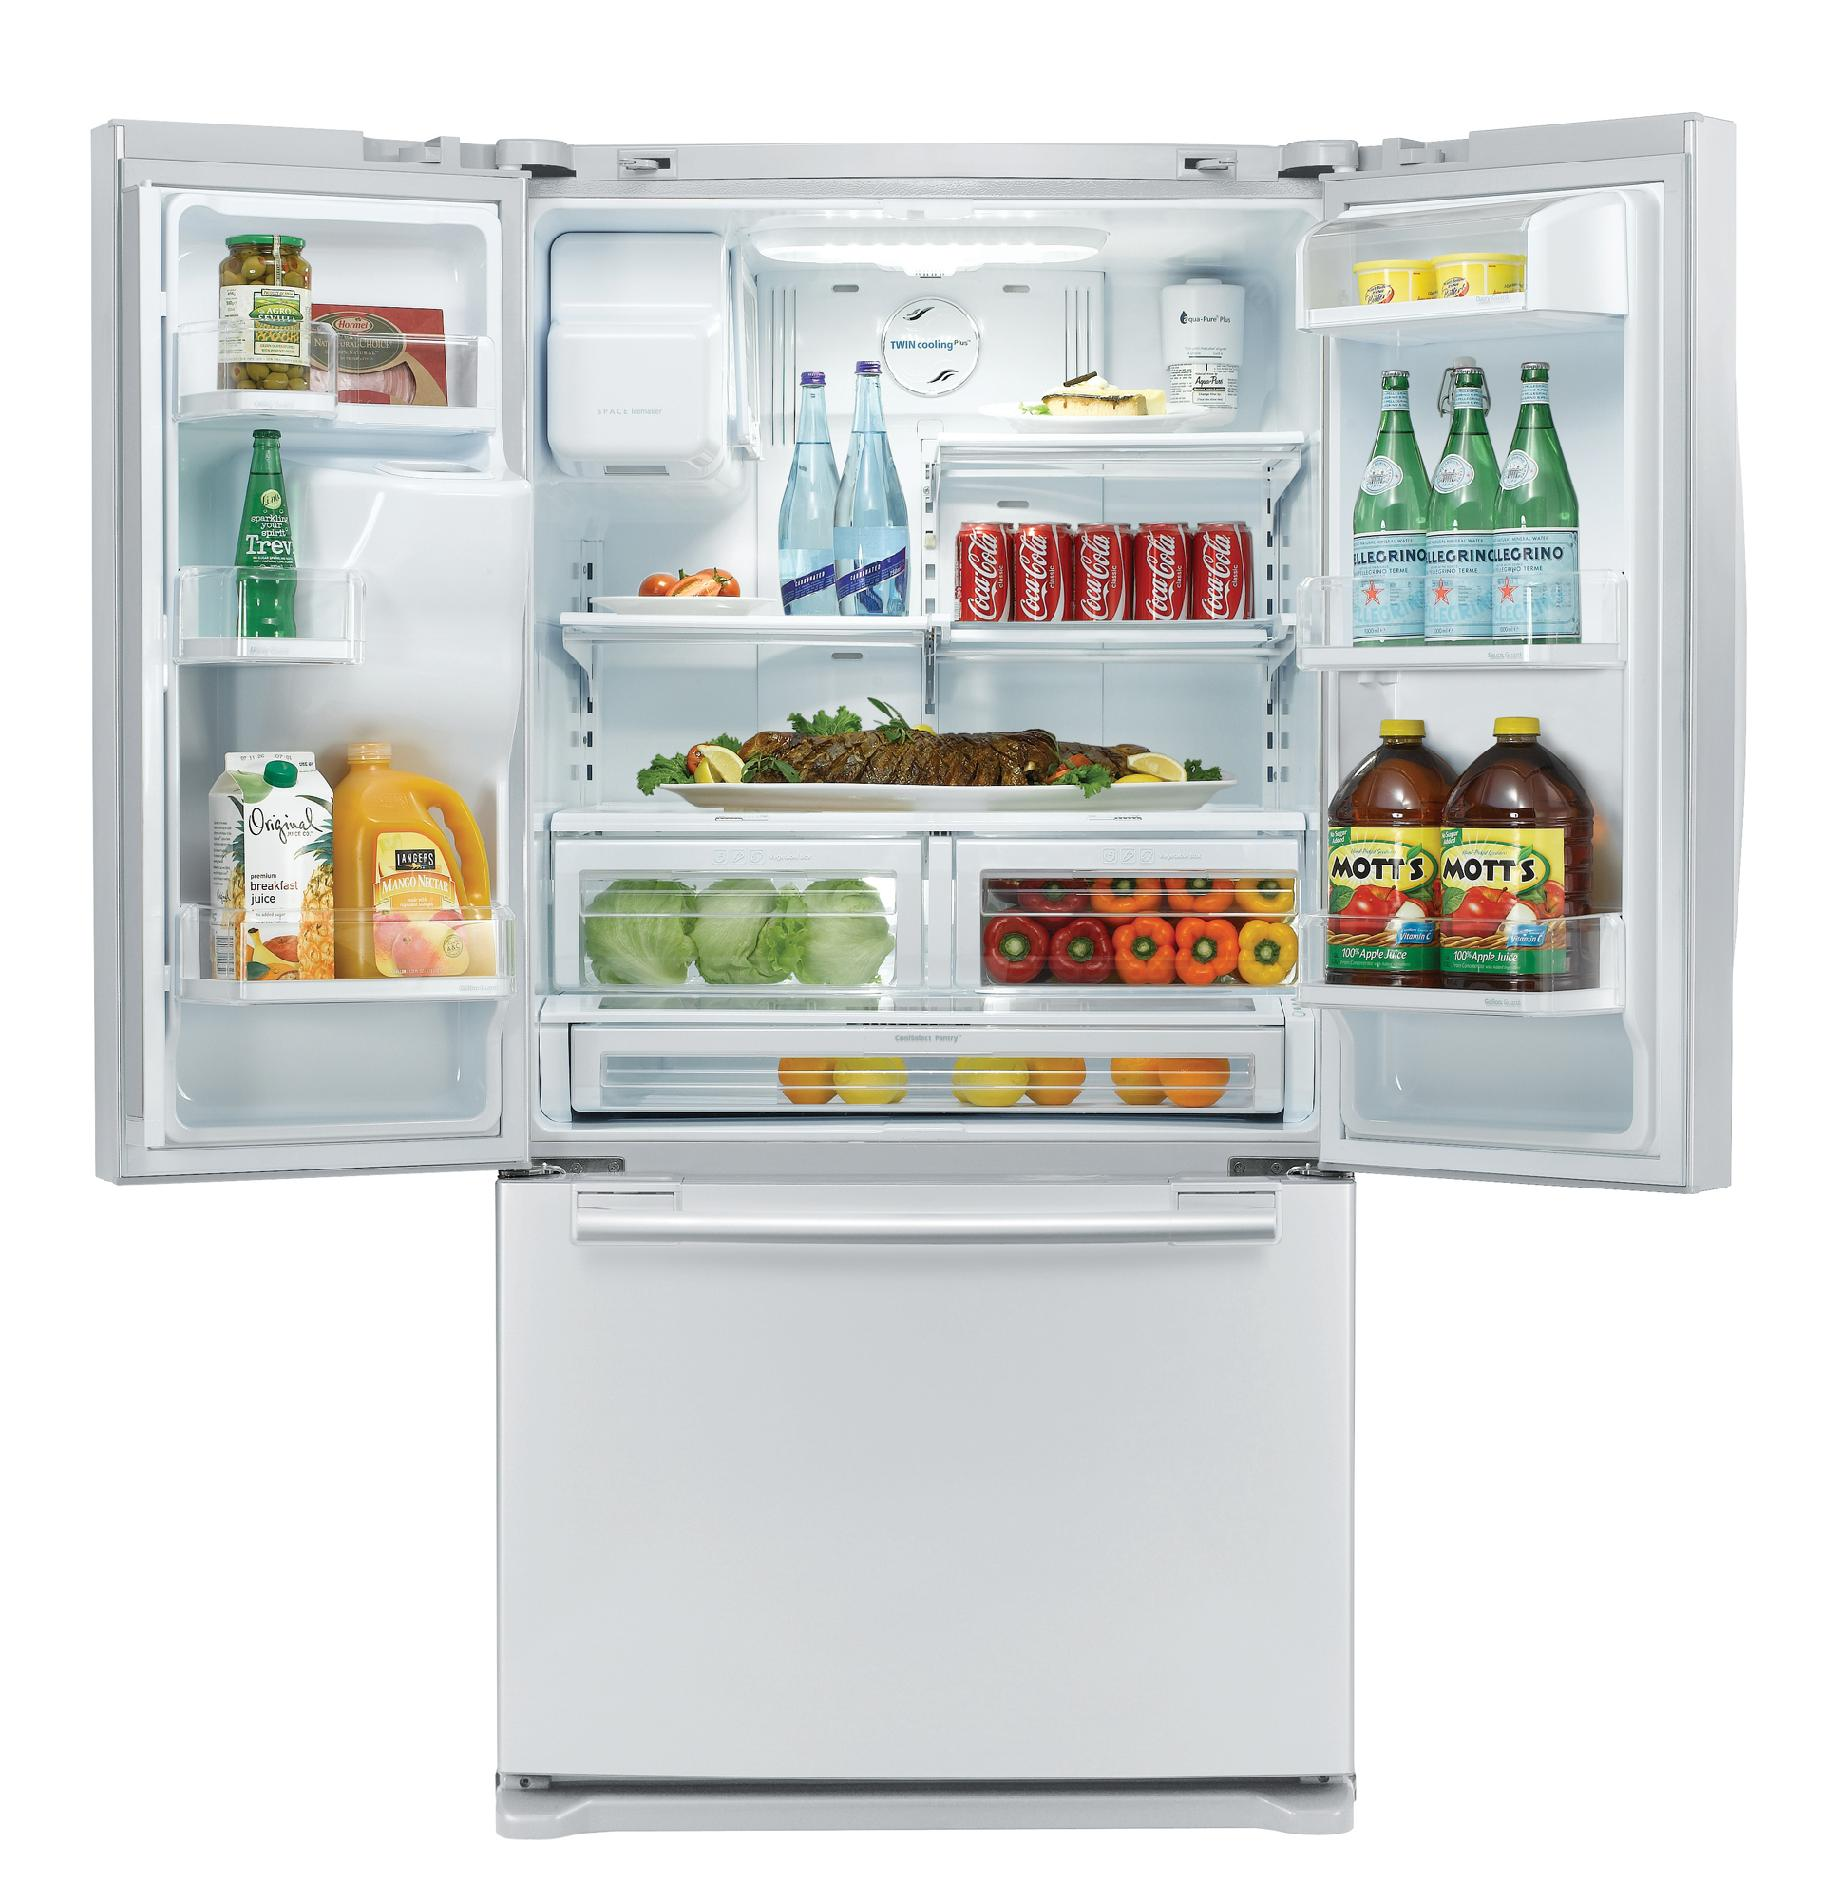 Samsung 29 cu. ft. French Door Refrigerator - White